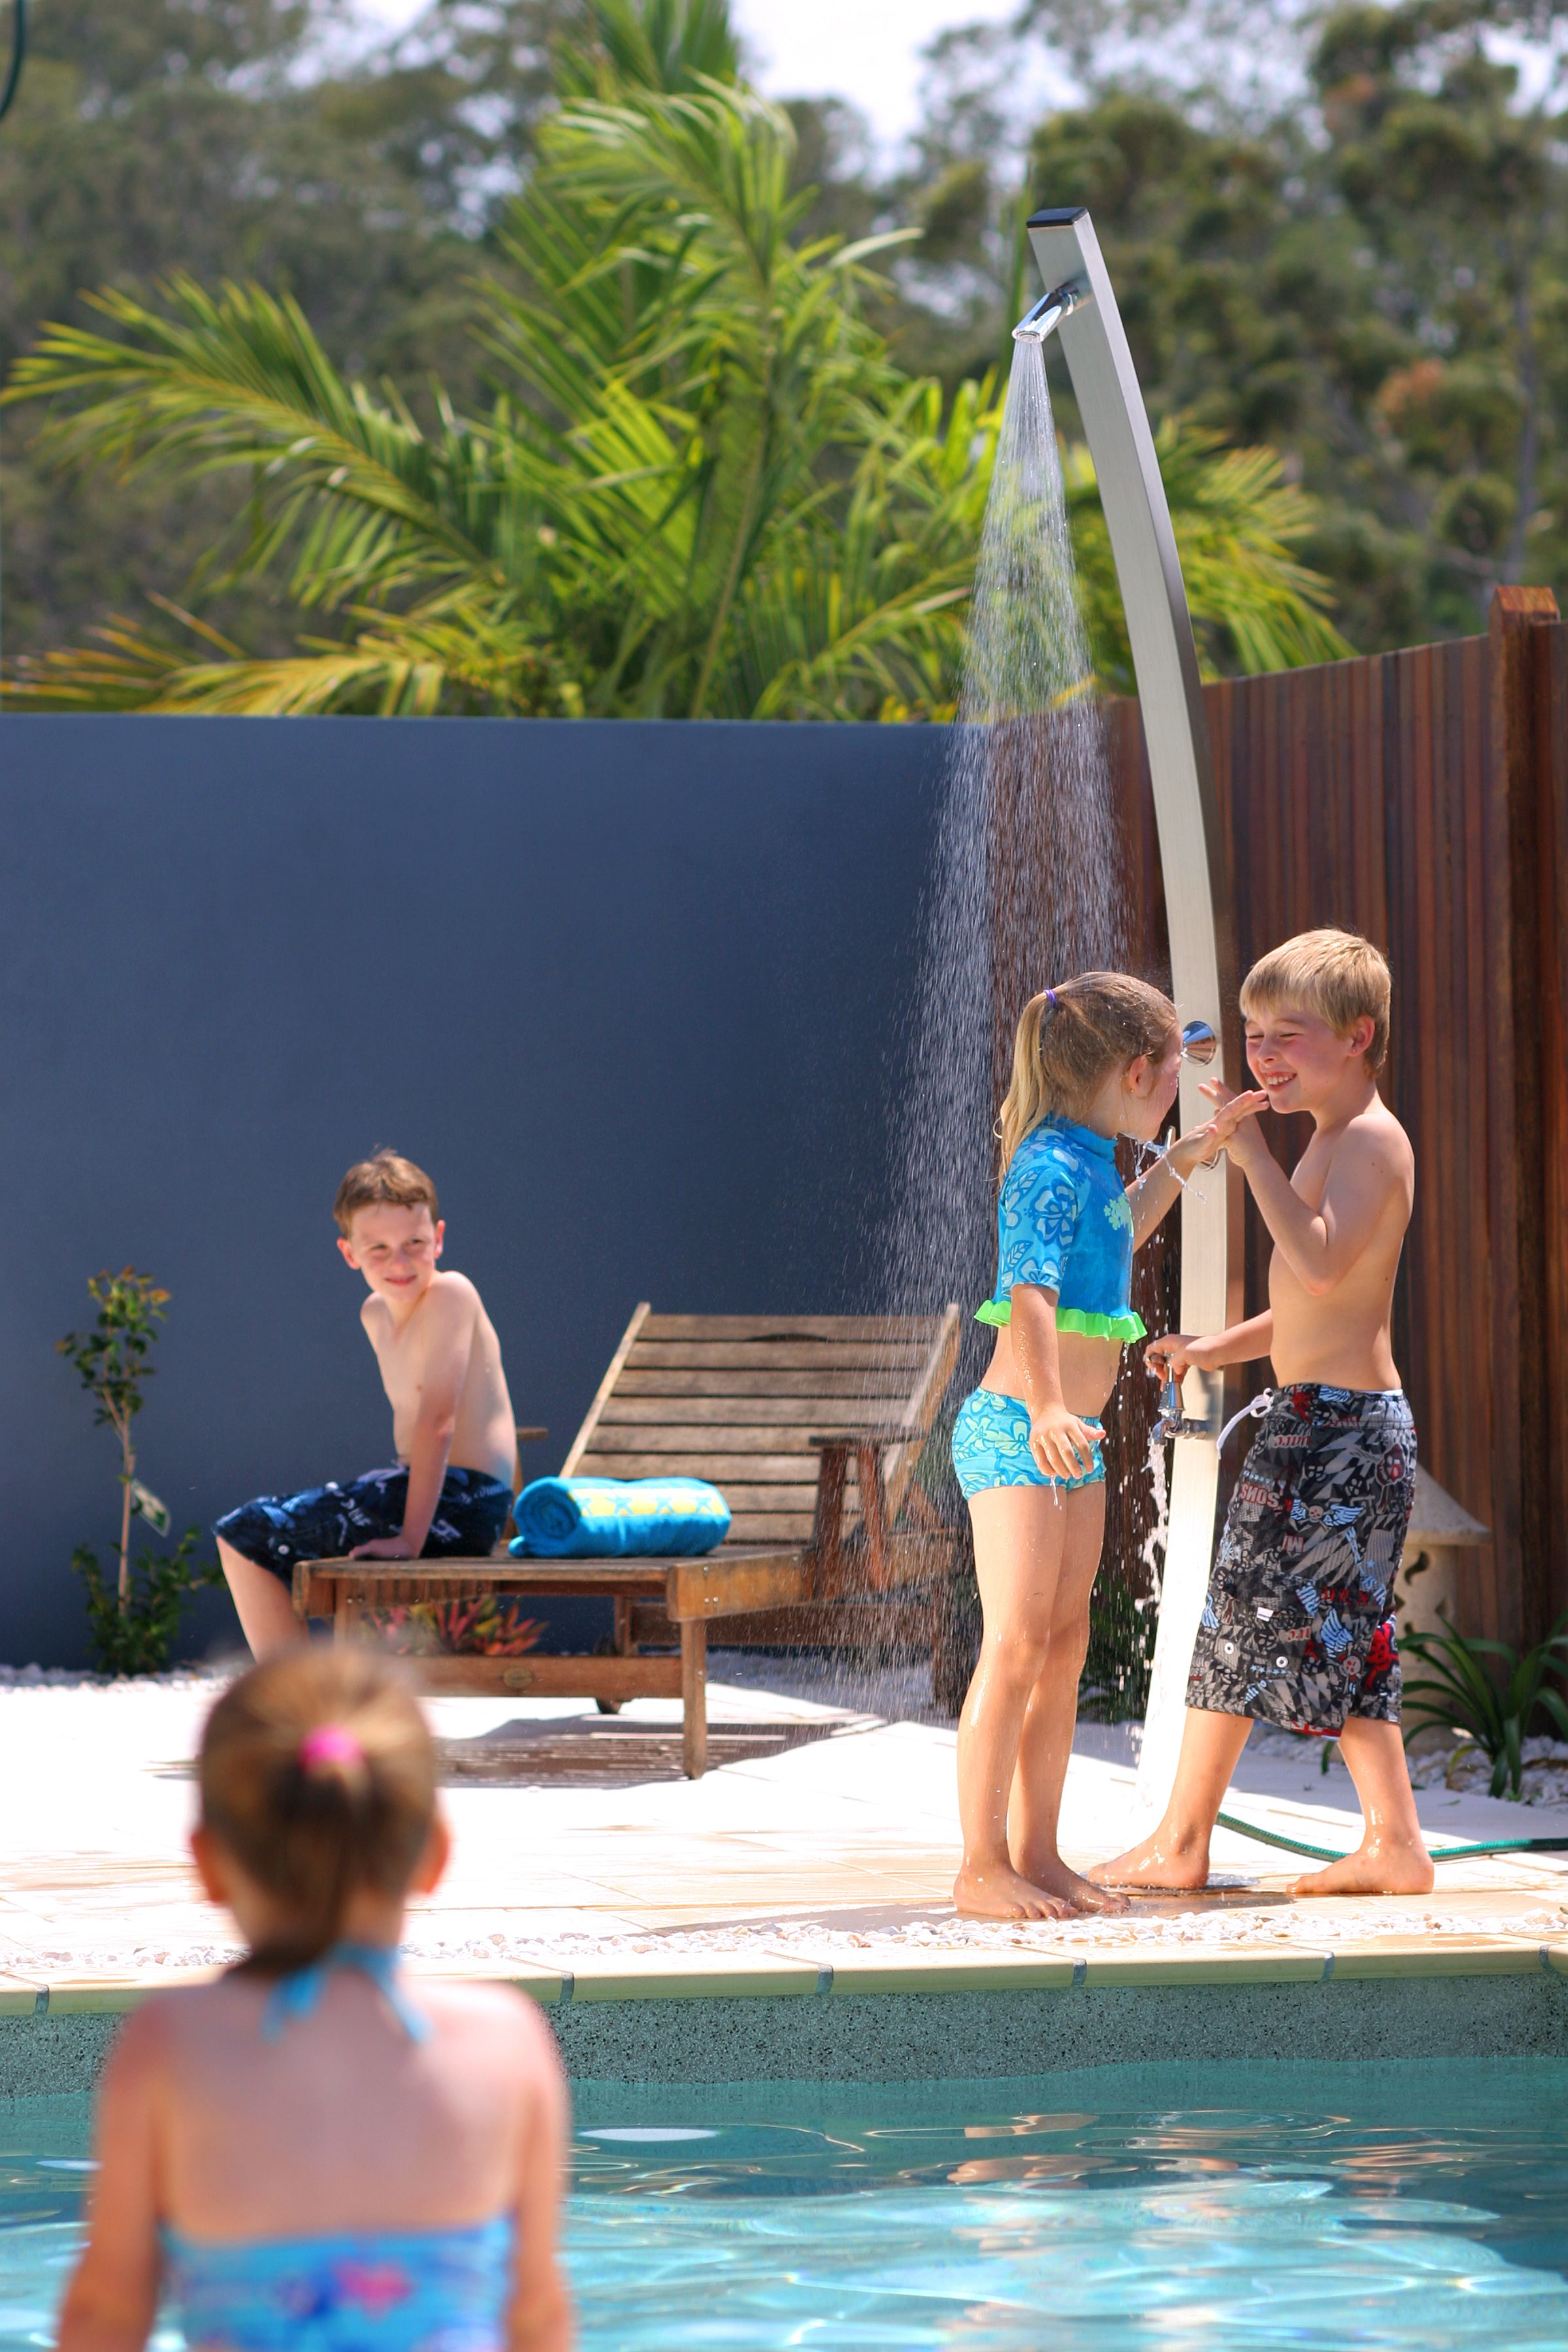 Rainware Outdoor Showers provide summer fun for the whole family ...